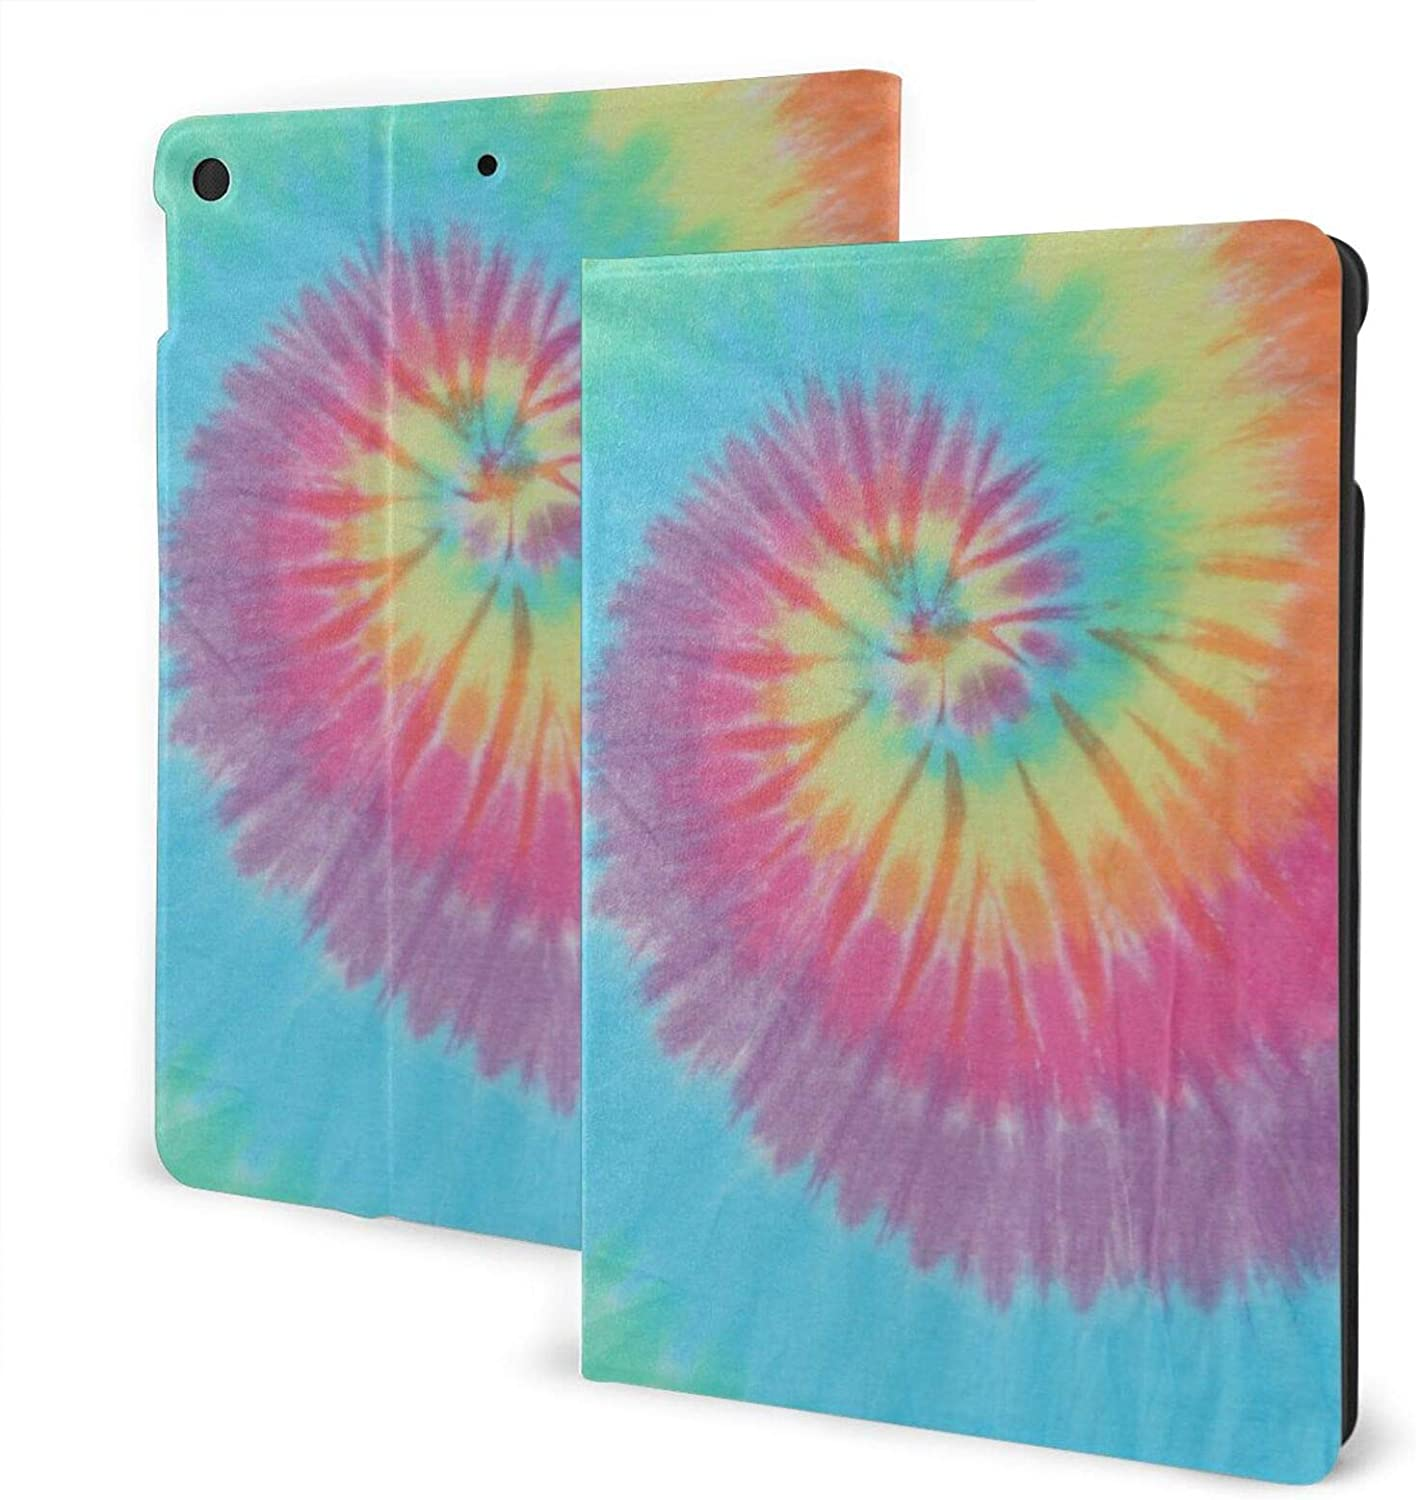 Ipad Air 3 Ipad Pro Ipad 7th Case Tie-Dye Protective Shockproof for Apple Free-Angle Viewing Cover with Adjustable Stand Auto Sleep Wake Function